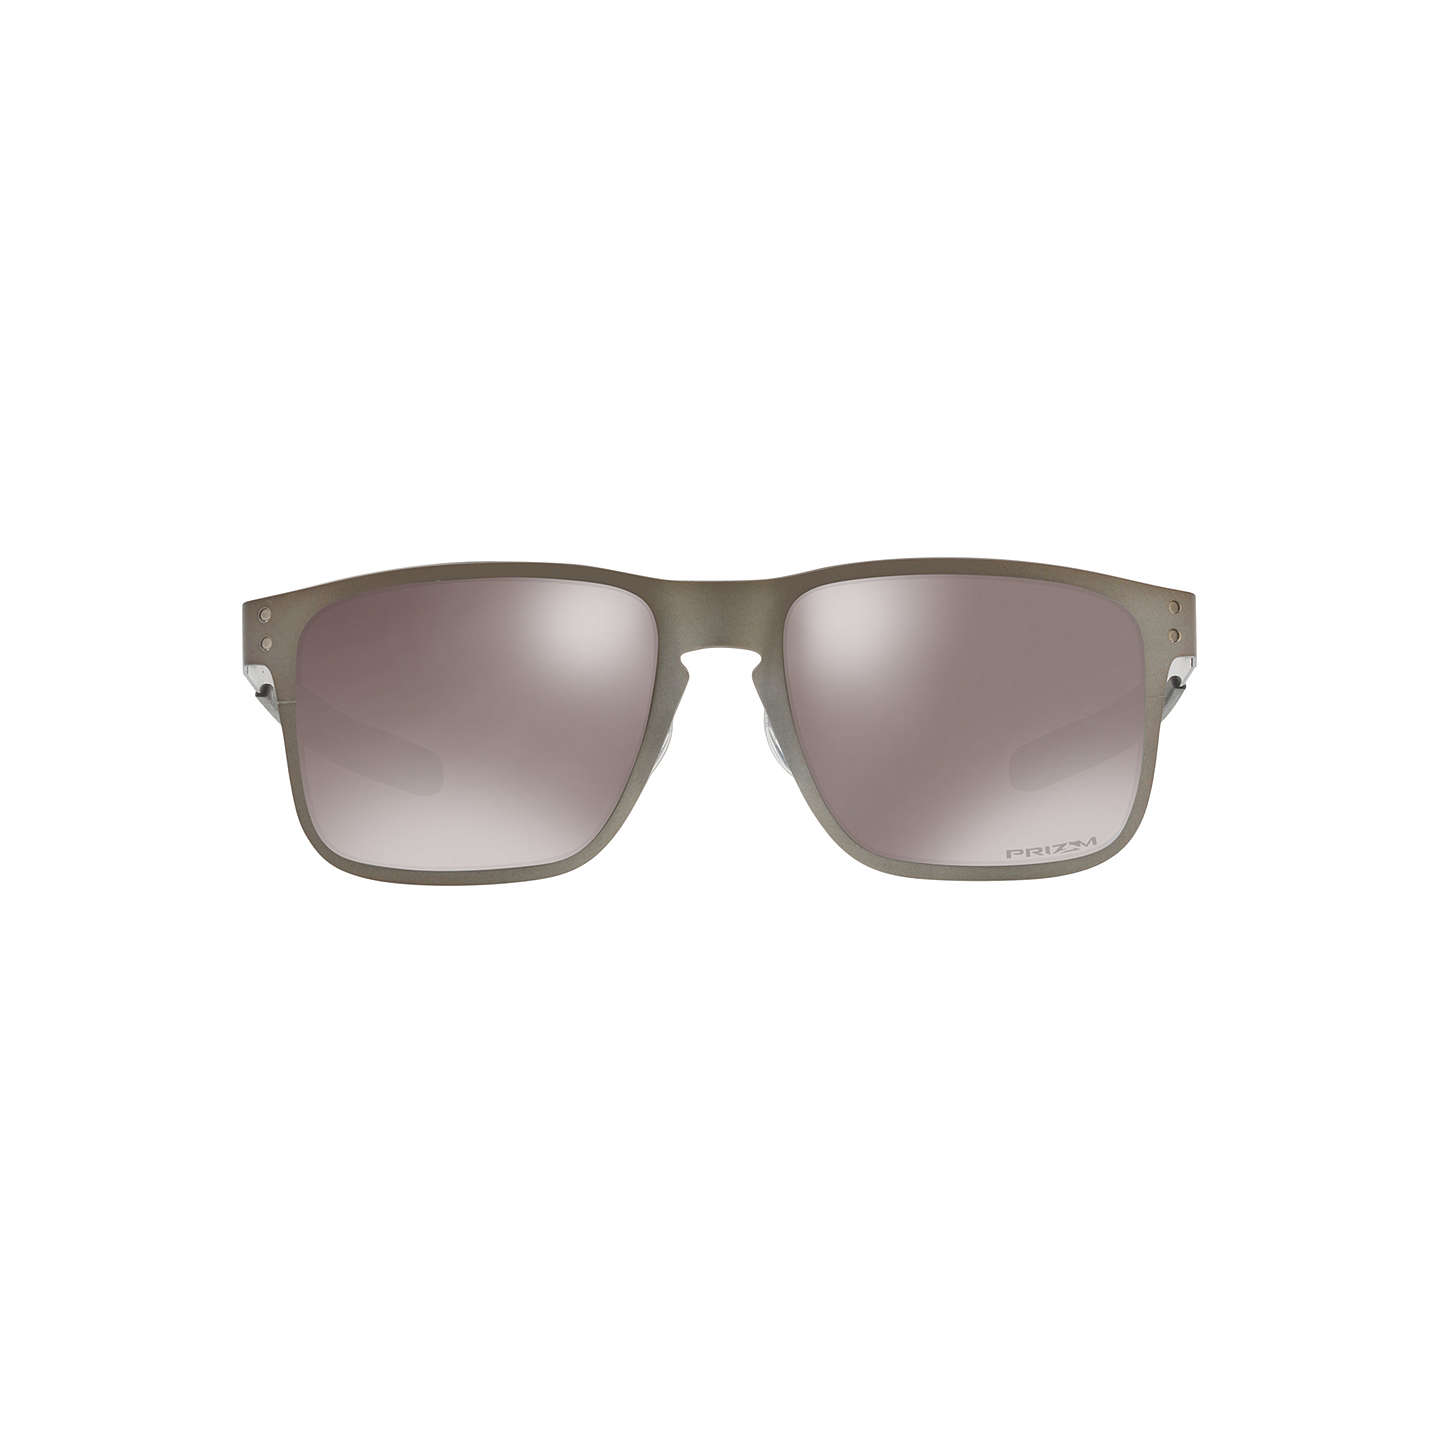 BuyOakley OO4123 Holbrook Prizm Polarised Metal Square Sunglasses, Matte Grey/Mirror Beige Online at johnlewis.com